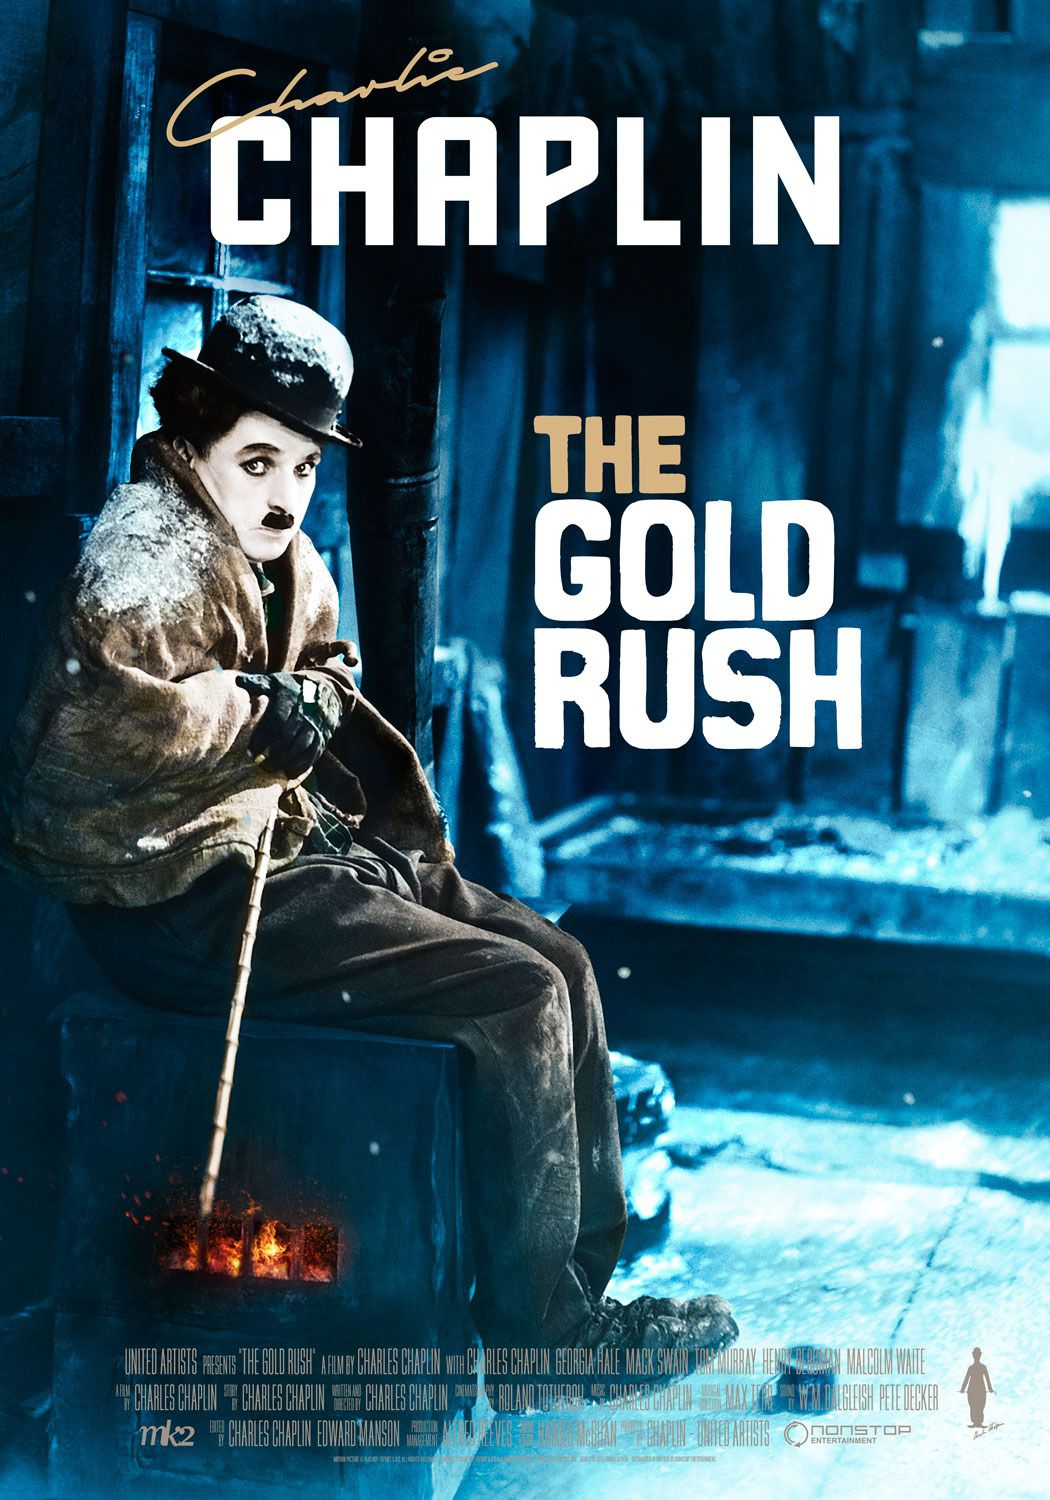 Film - Charlie Chaplin - 1925 - Gold Rush - Corsa all'Oro - poster